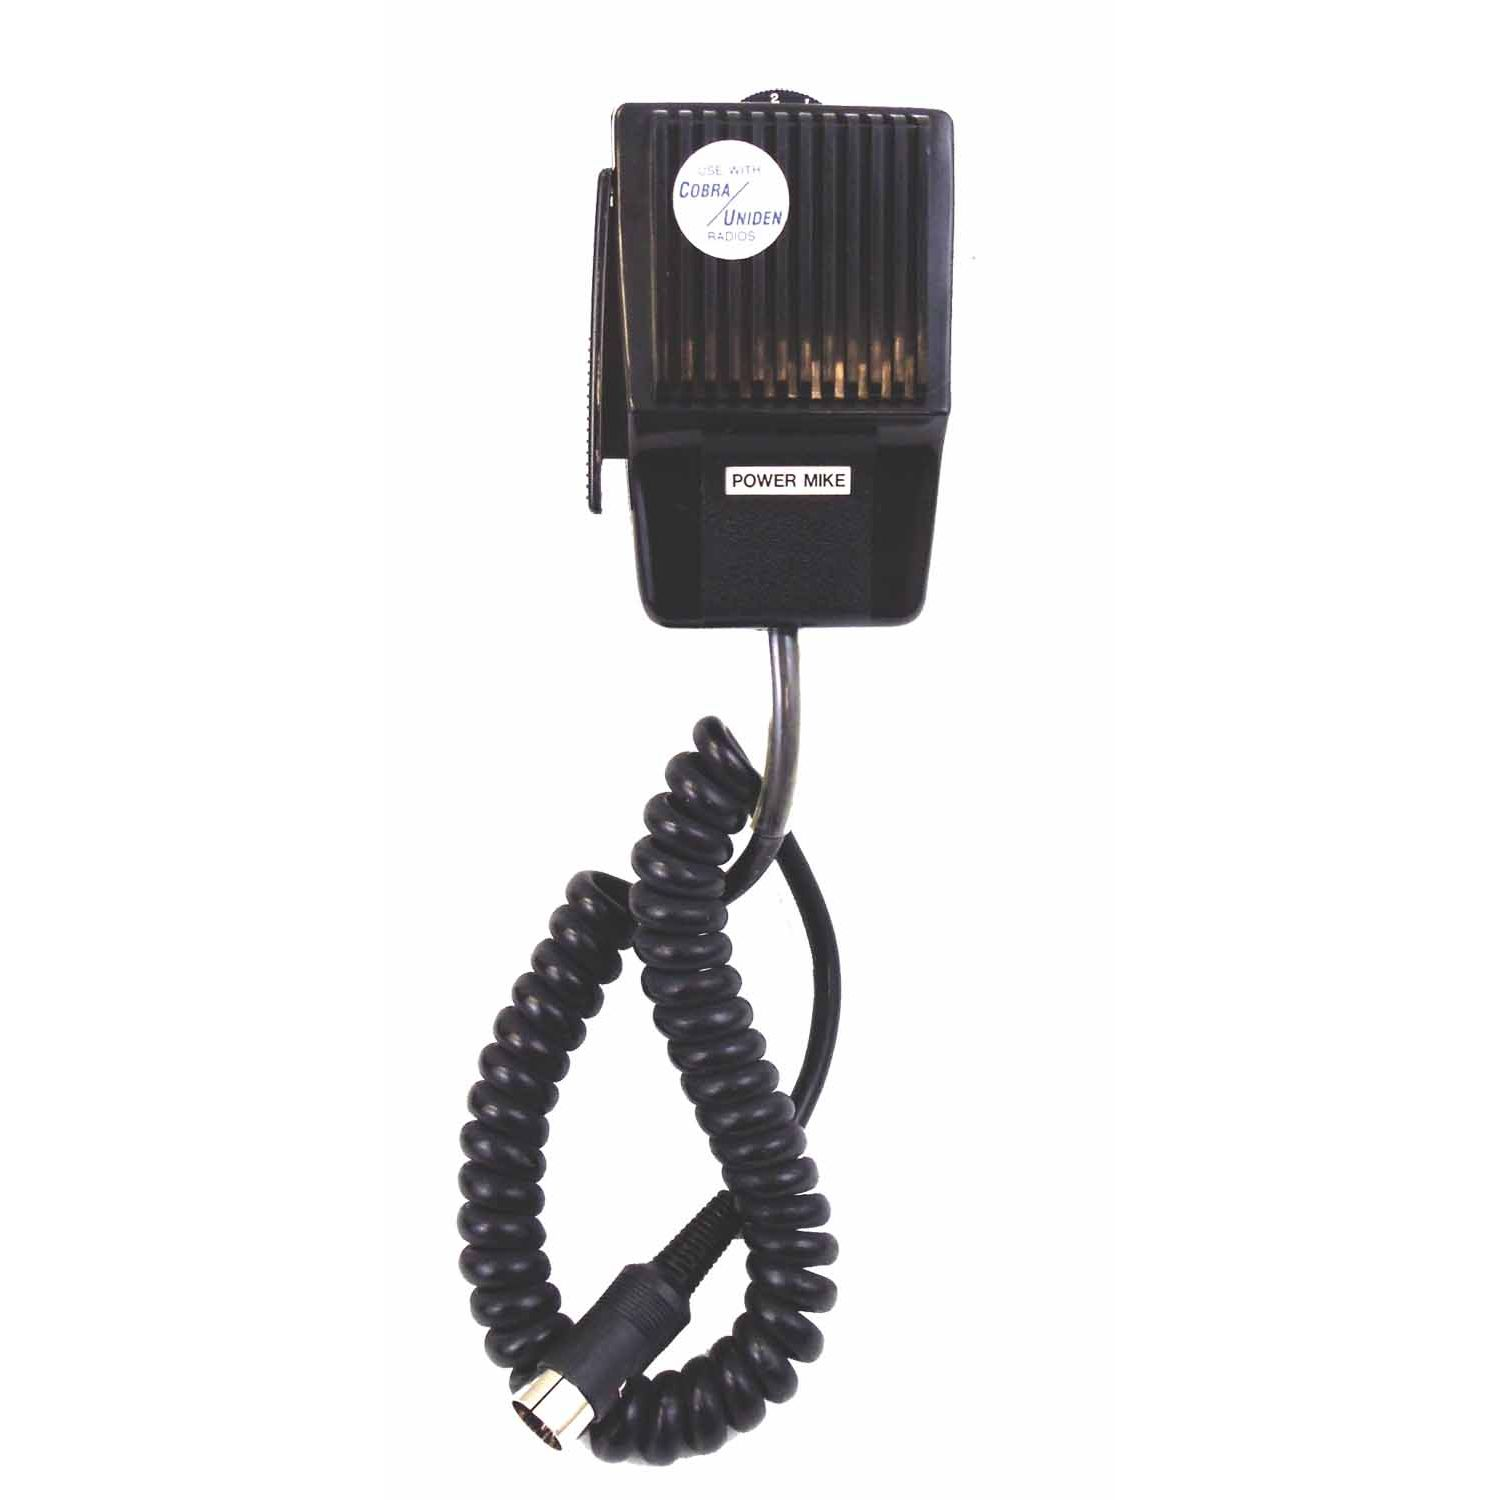 CB5DP - Marmat Power Microphone 5 Pin Din Cobra® Uniden (Battery Not Included)